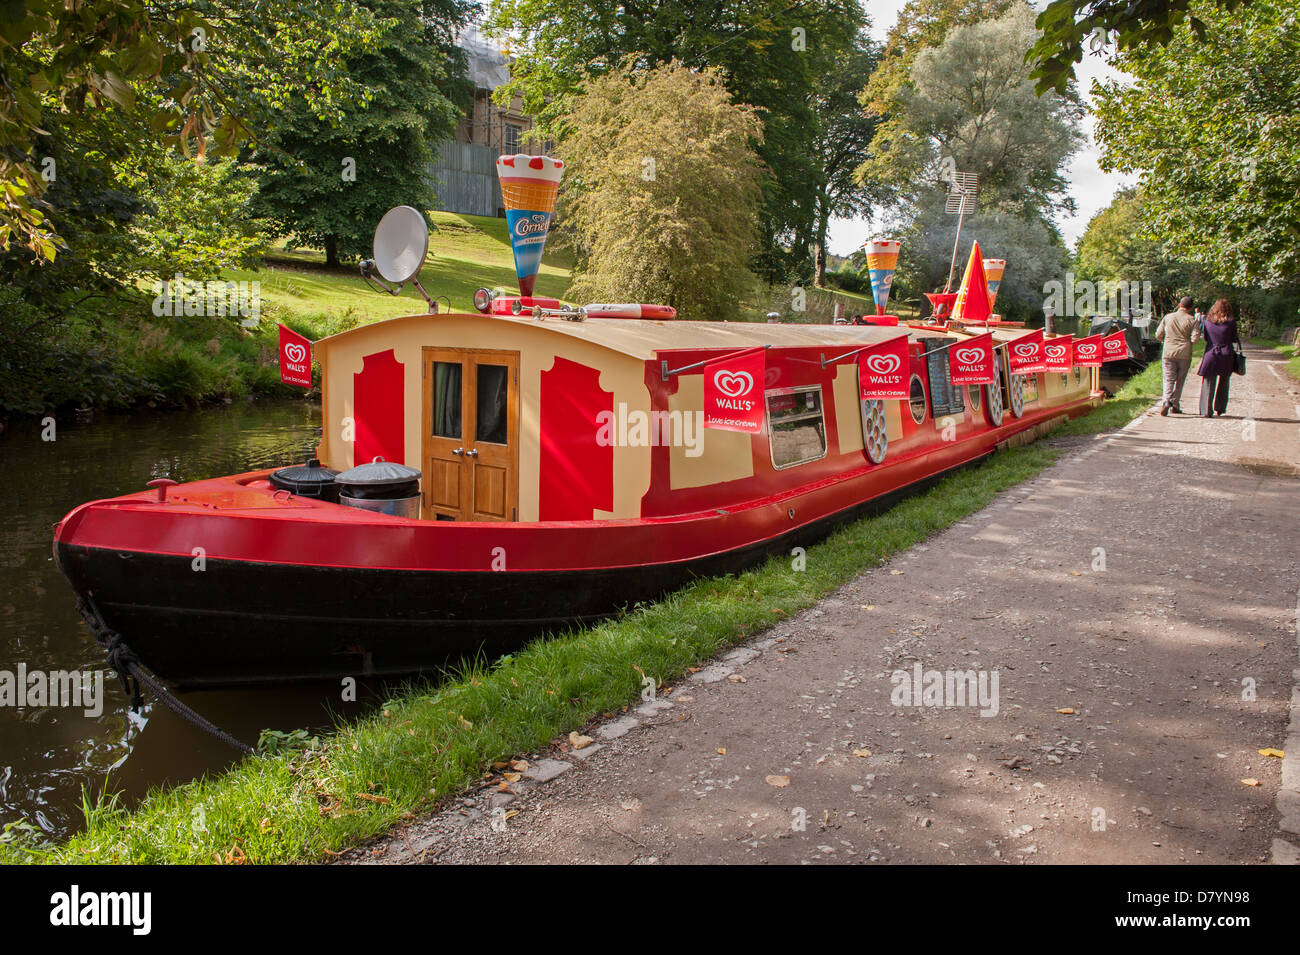 Colourful traditional barge boat moored on sunny summer day (floating shop selling ice creams) - scenic Leeds Liverpool - Stock Image